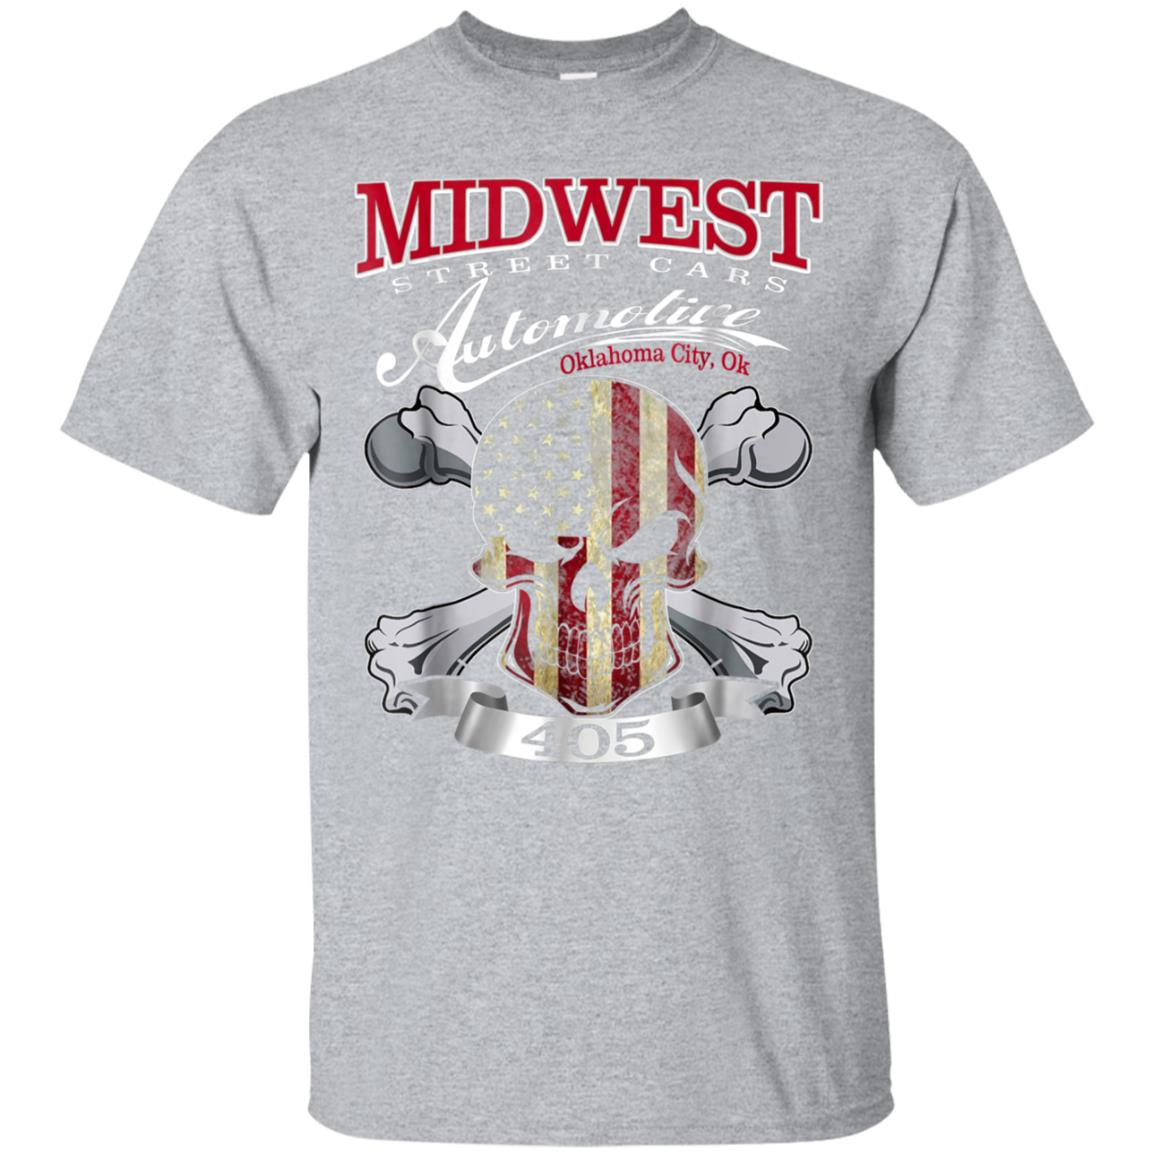 Midwest Street Car Automotive Drag Racing Shirt 99promocode